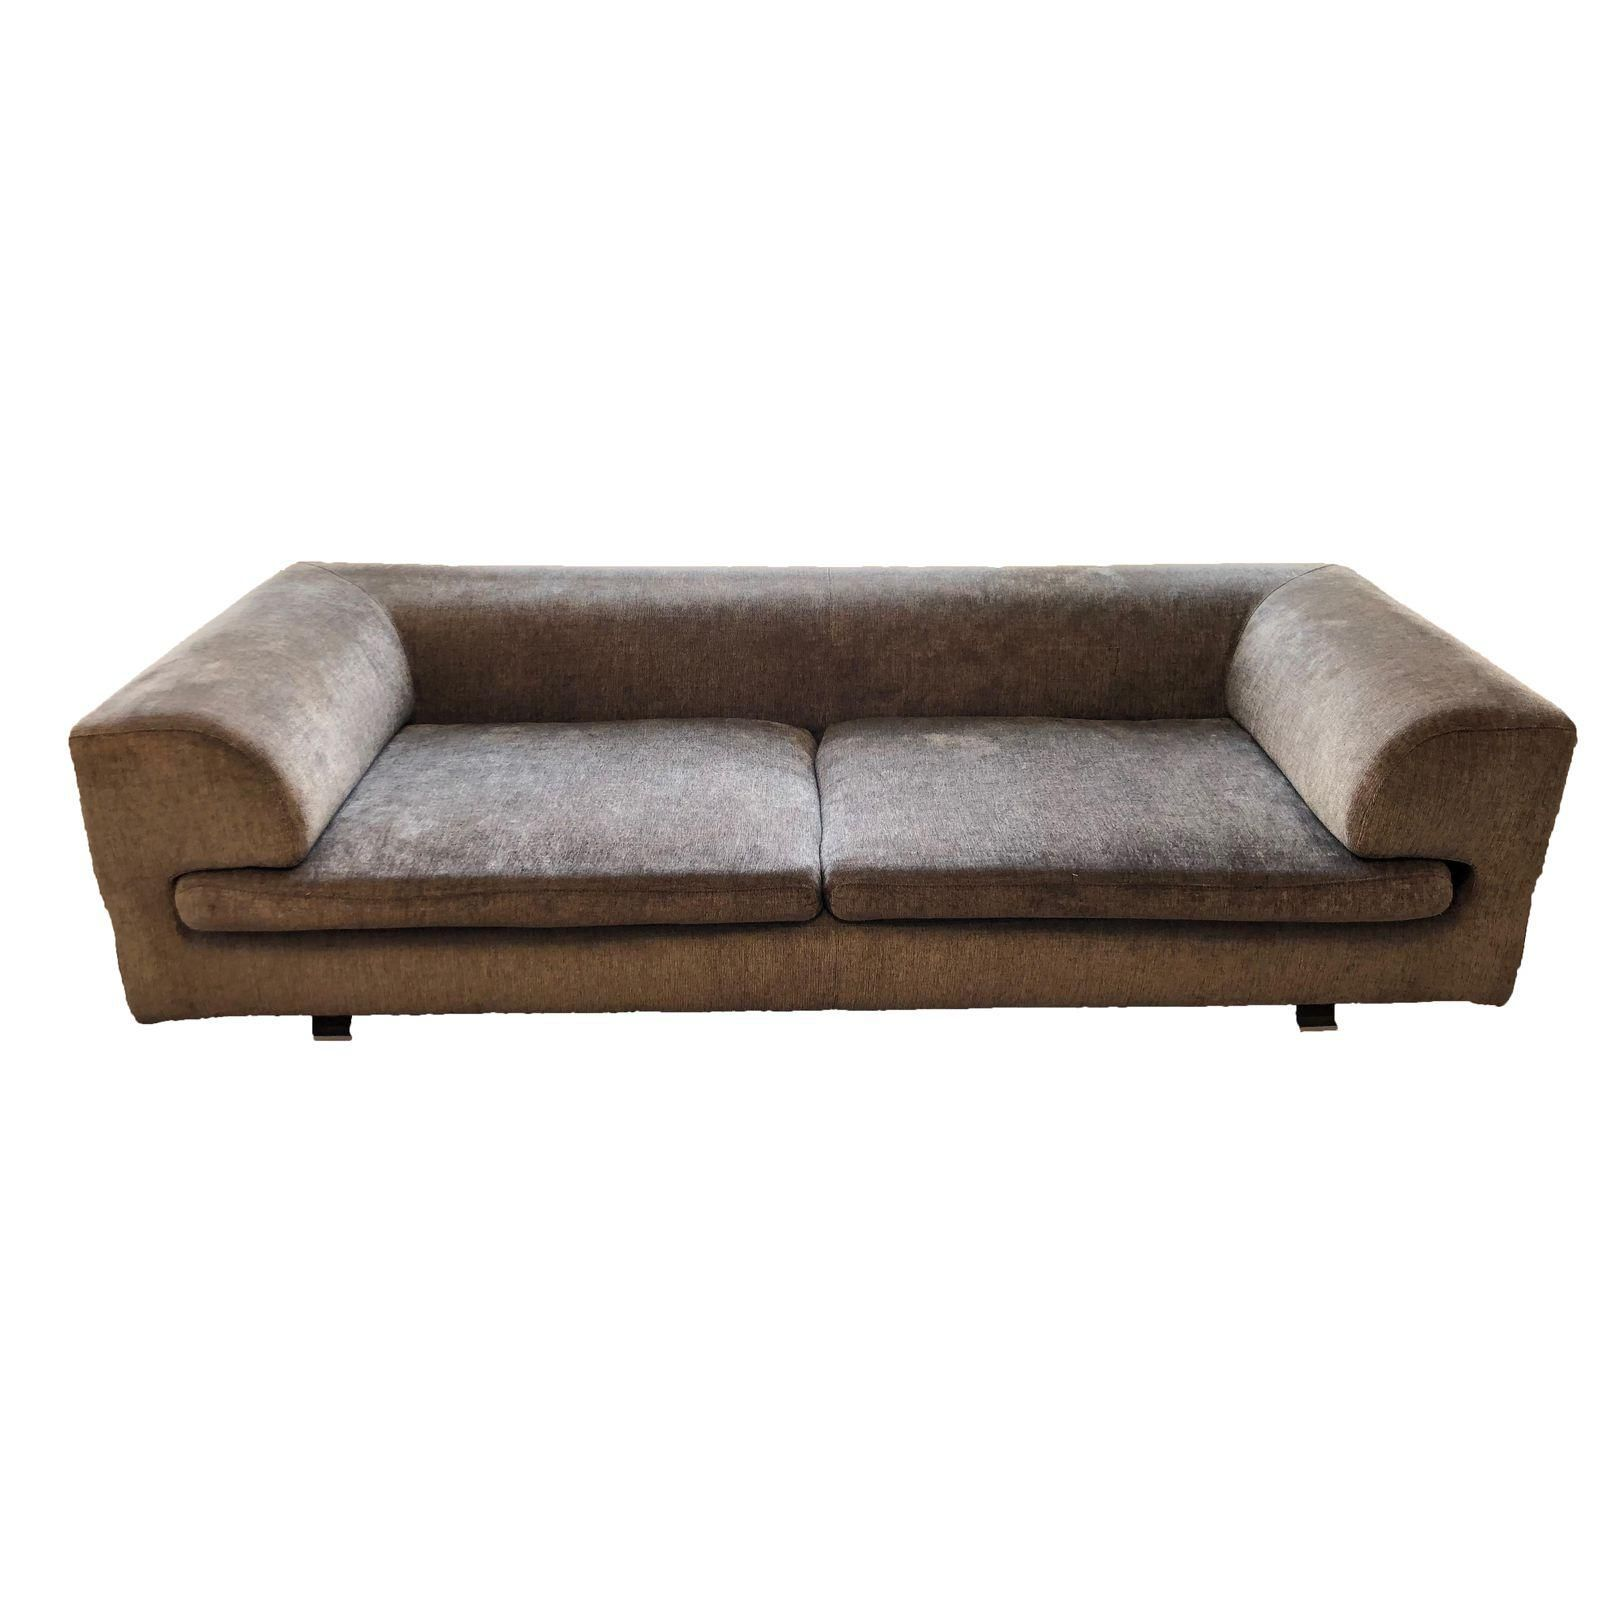 Roche Bobois Elixir Model Upholstered 4 Seat Sofa When There S No